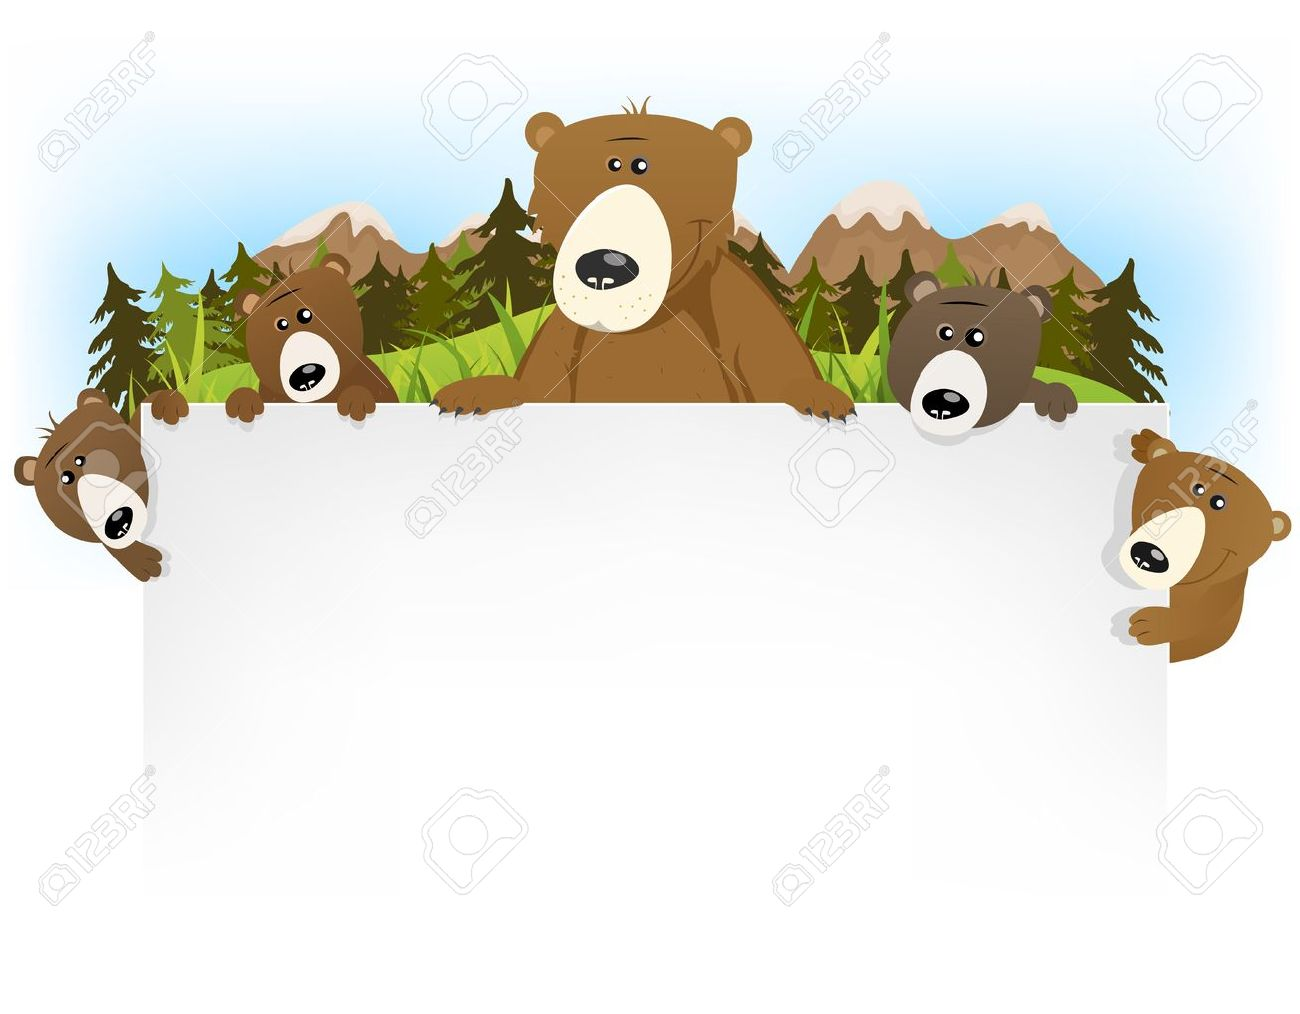 Grizzly Family clipart #17, Download drawings